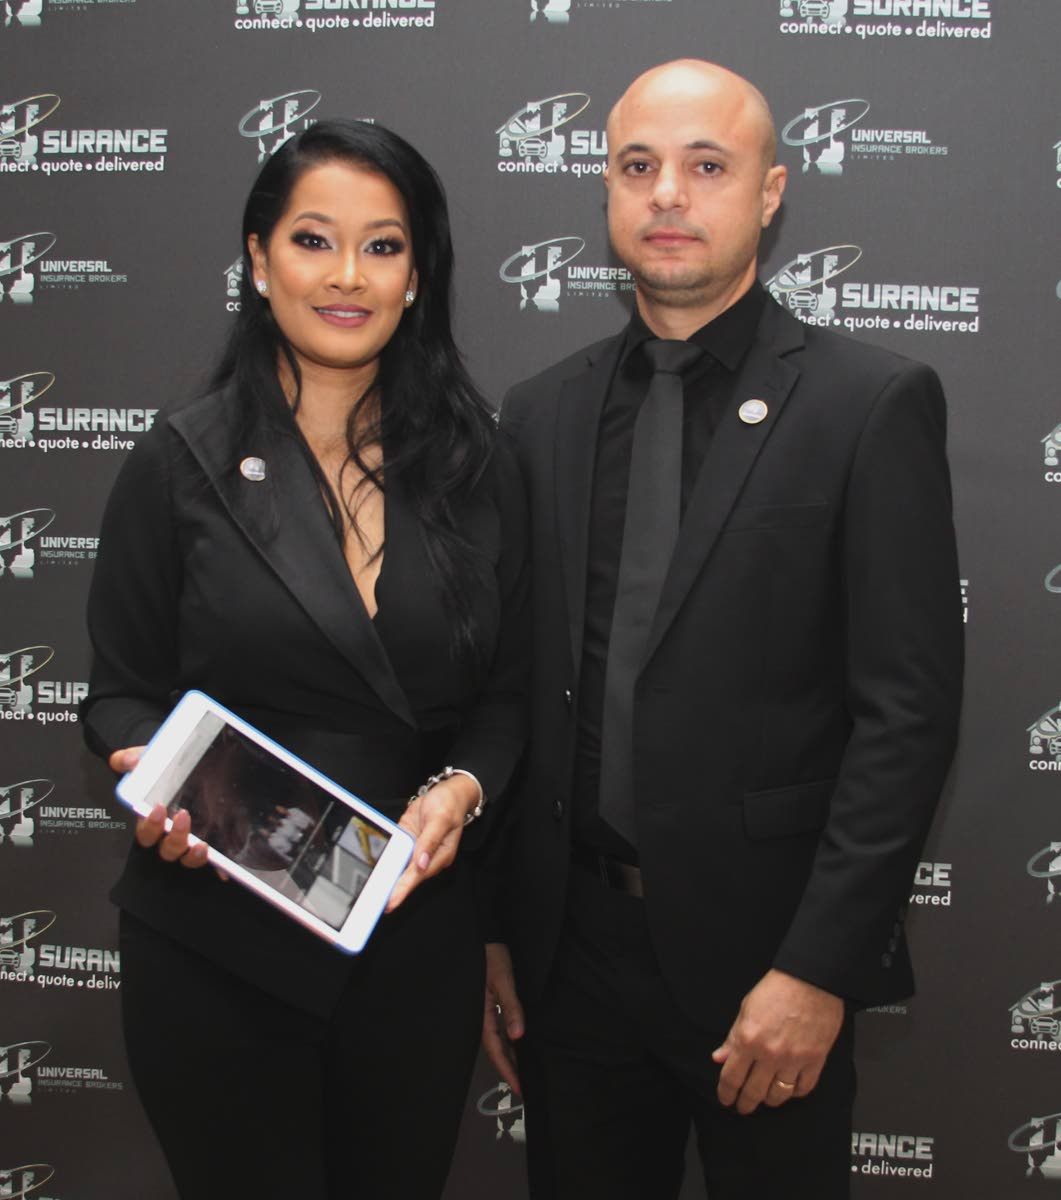 Troy Gabriel, founder of Universal Insurance Brokers Limited(UIBL) and his wife, Melesha, UIBL executive director, at the official launch of Usurance - Online Insurance Solution, from Universal Insurance Brokers Ltd, Hyatt Regency, Port of Spain last Friday.